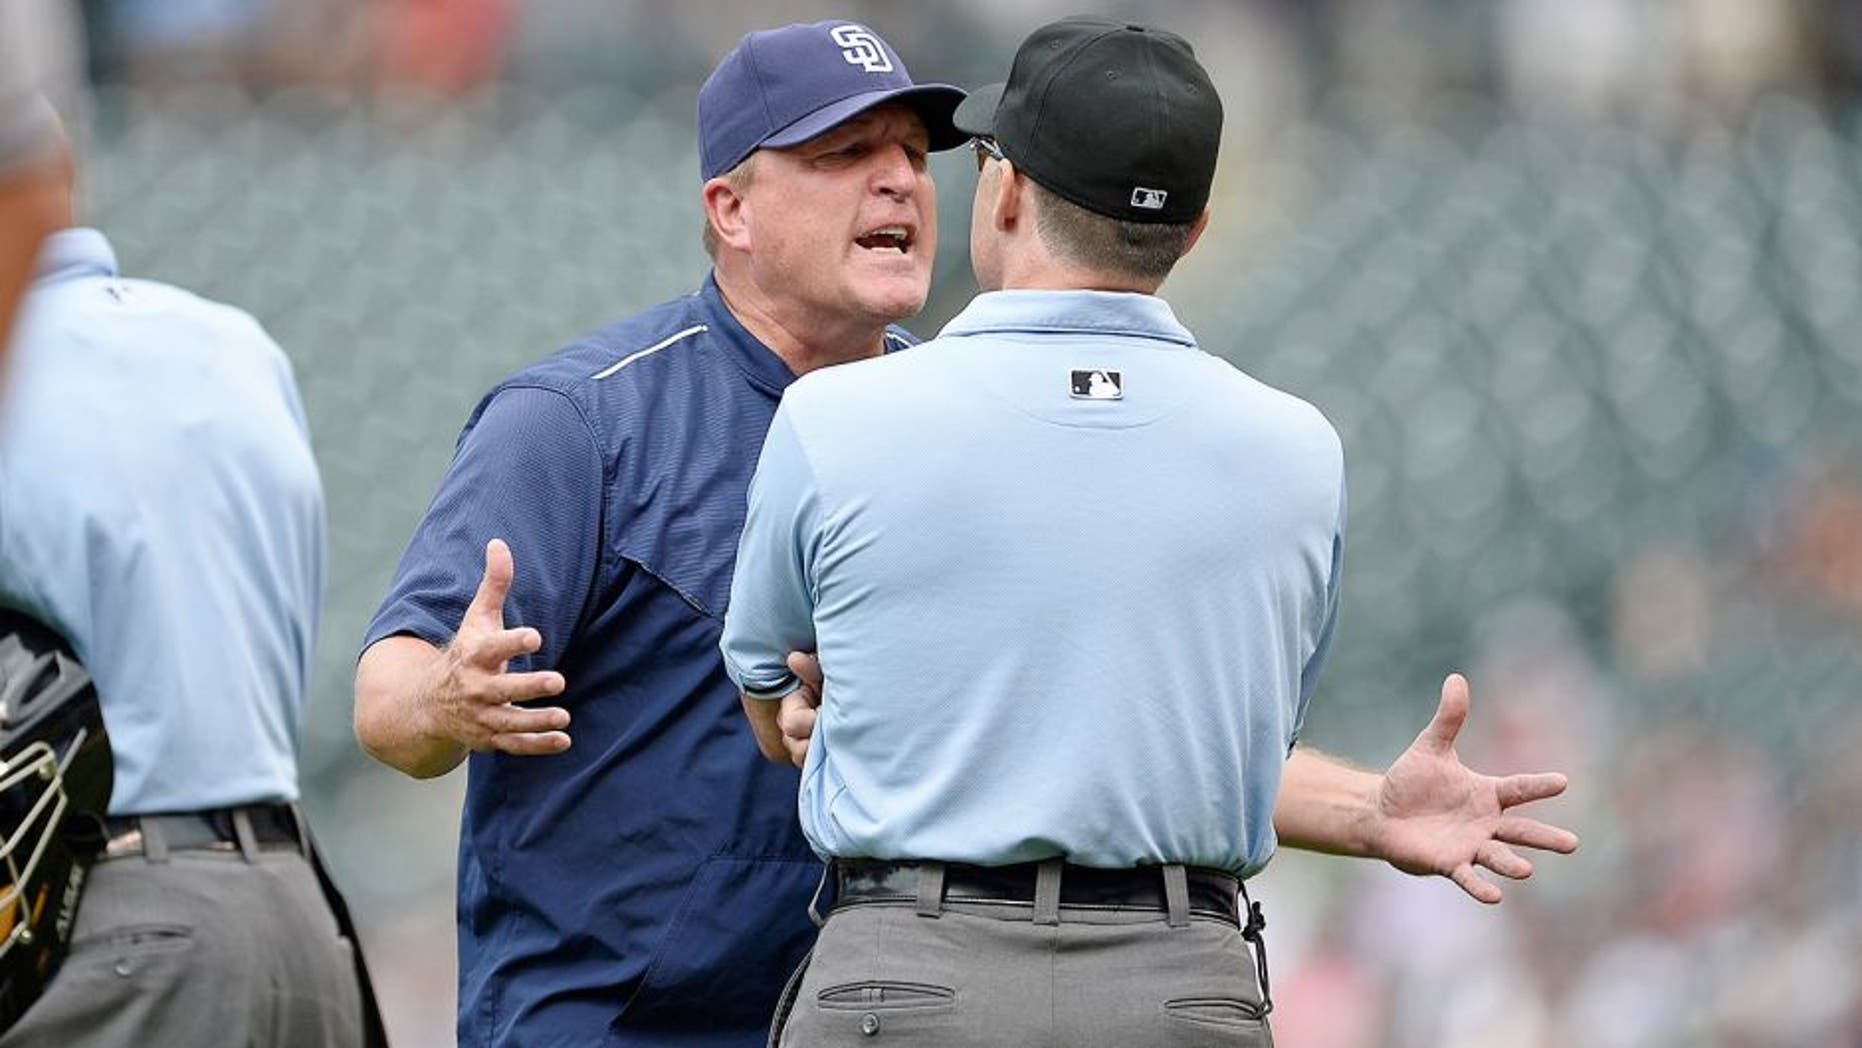 Aug 16, 2015; Denver, CO, USA; San Diego Padres interim manager Pat Murphy (24) argues with third base umpire Dan Iassogna (58) following a replay call in the seventh inning against the Colorado Rockies at Coors Field. The Rockies defeated the Padres 5-0. Mandatory Credit: Ron Chenoy-USA TODAY Sports